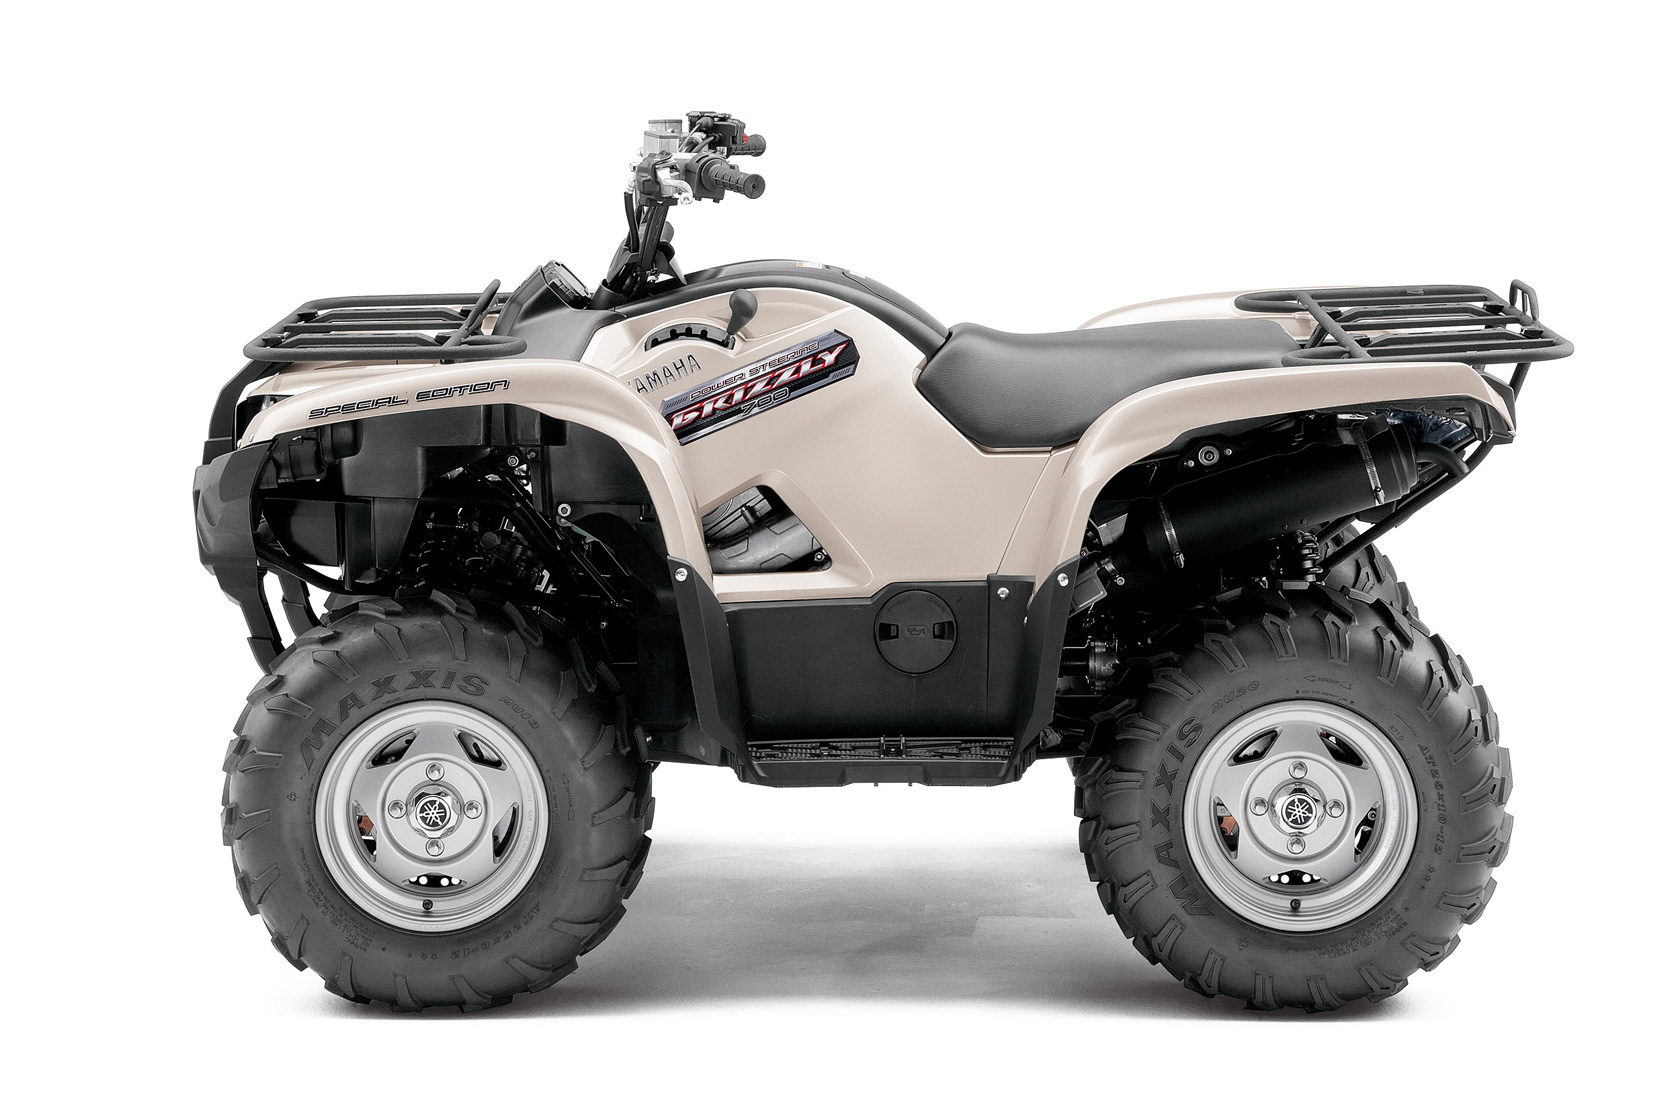 2012 yamaha grizzly 700 fi auto 4x4 eps special edition review. Black Bedroom Furniture Sets. Home Design Ideas